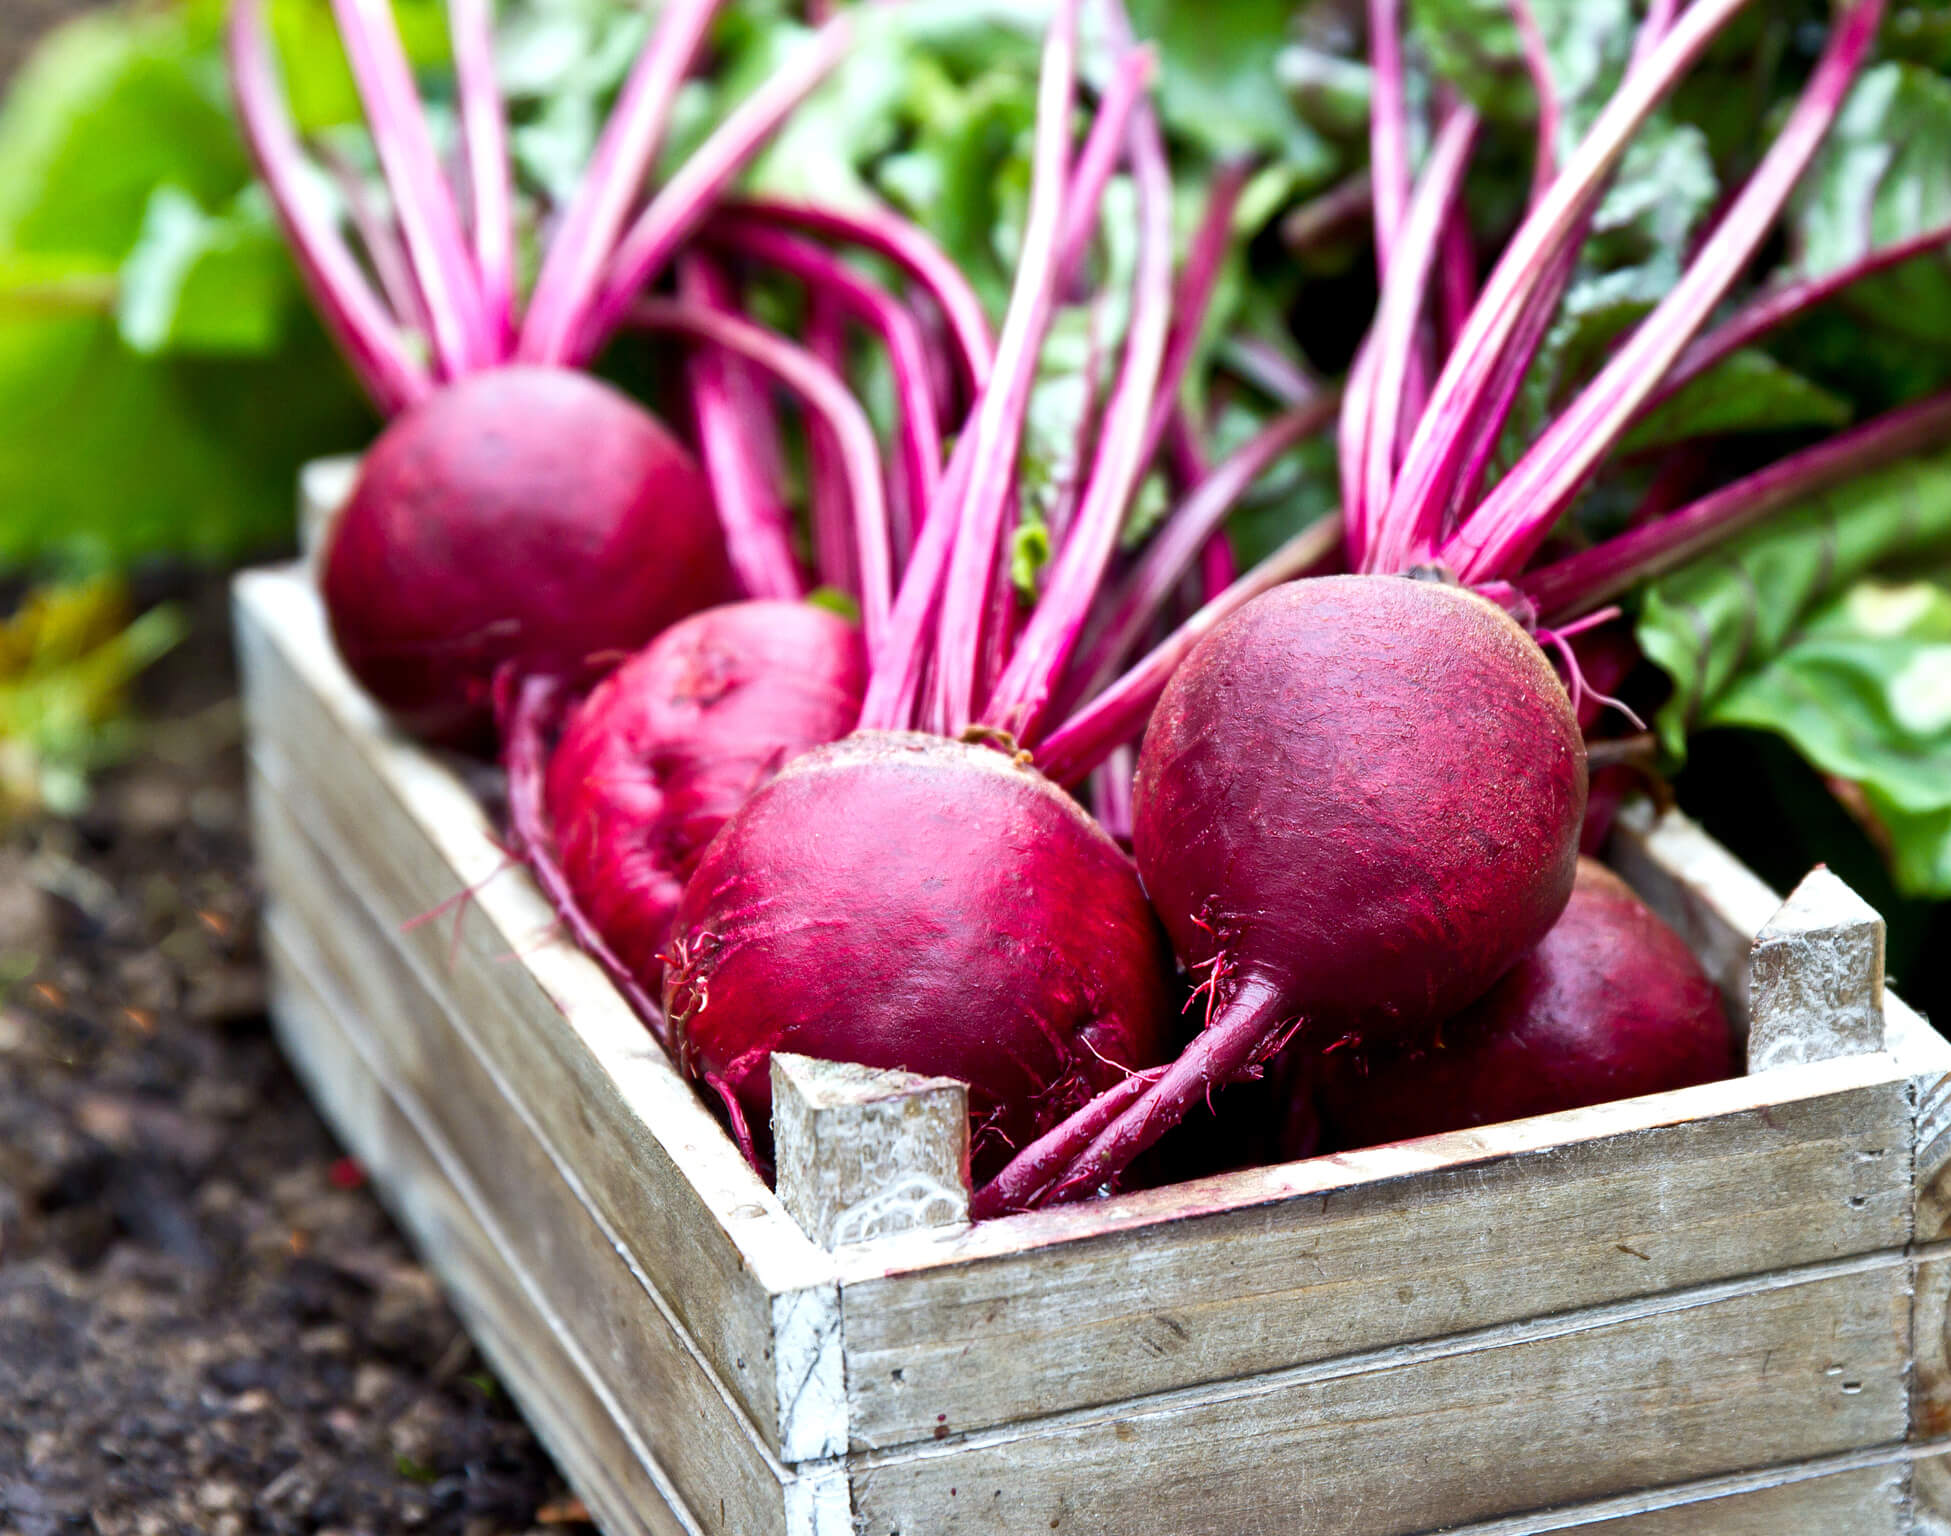 Benefits of beets: 10 reasons to eat more beets